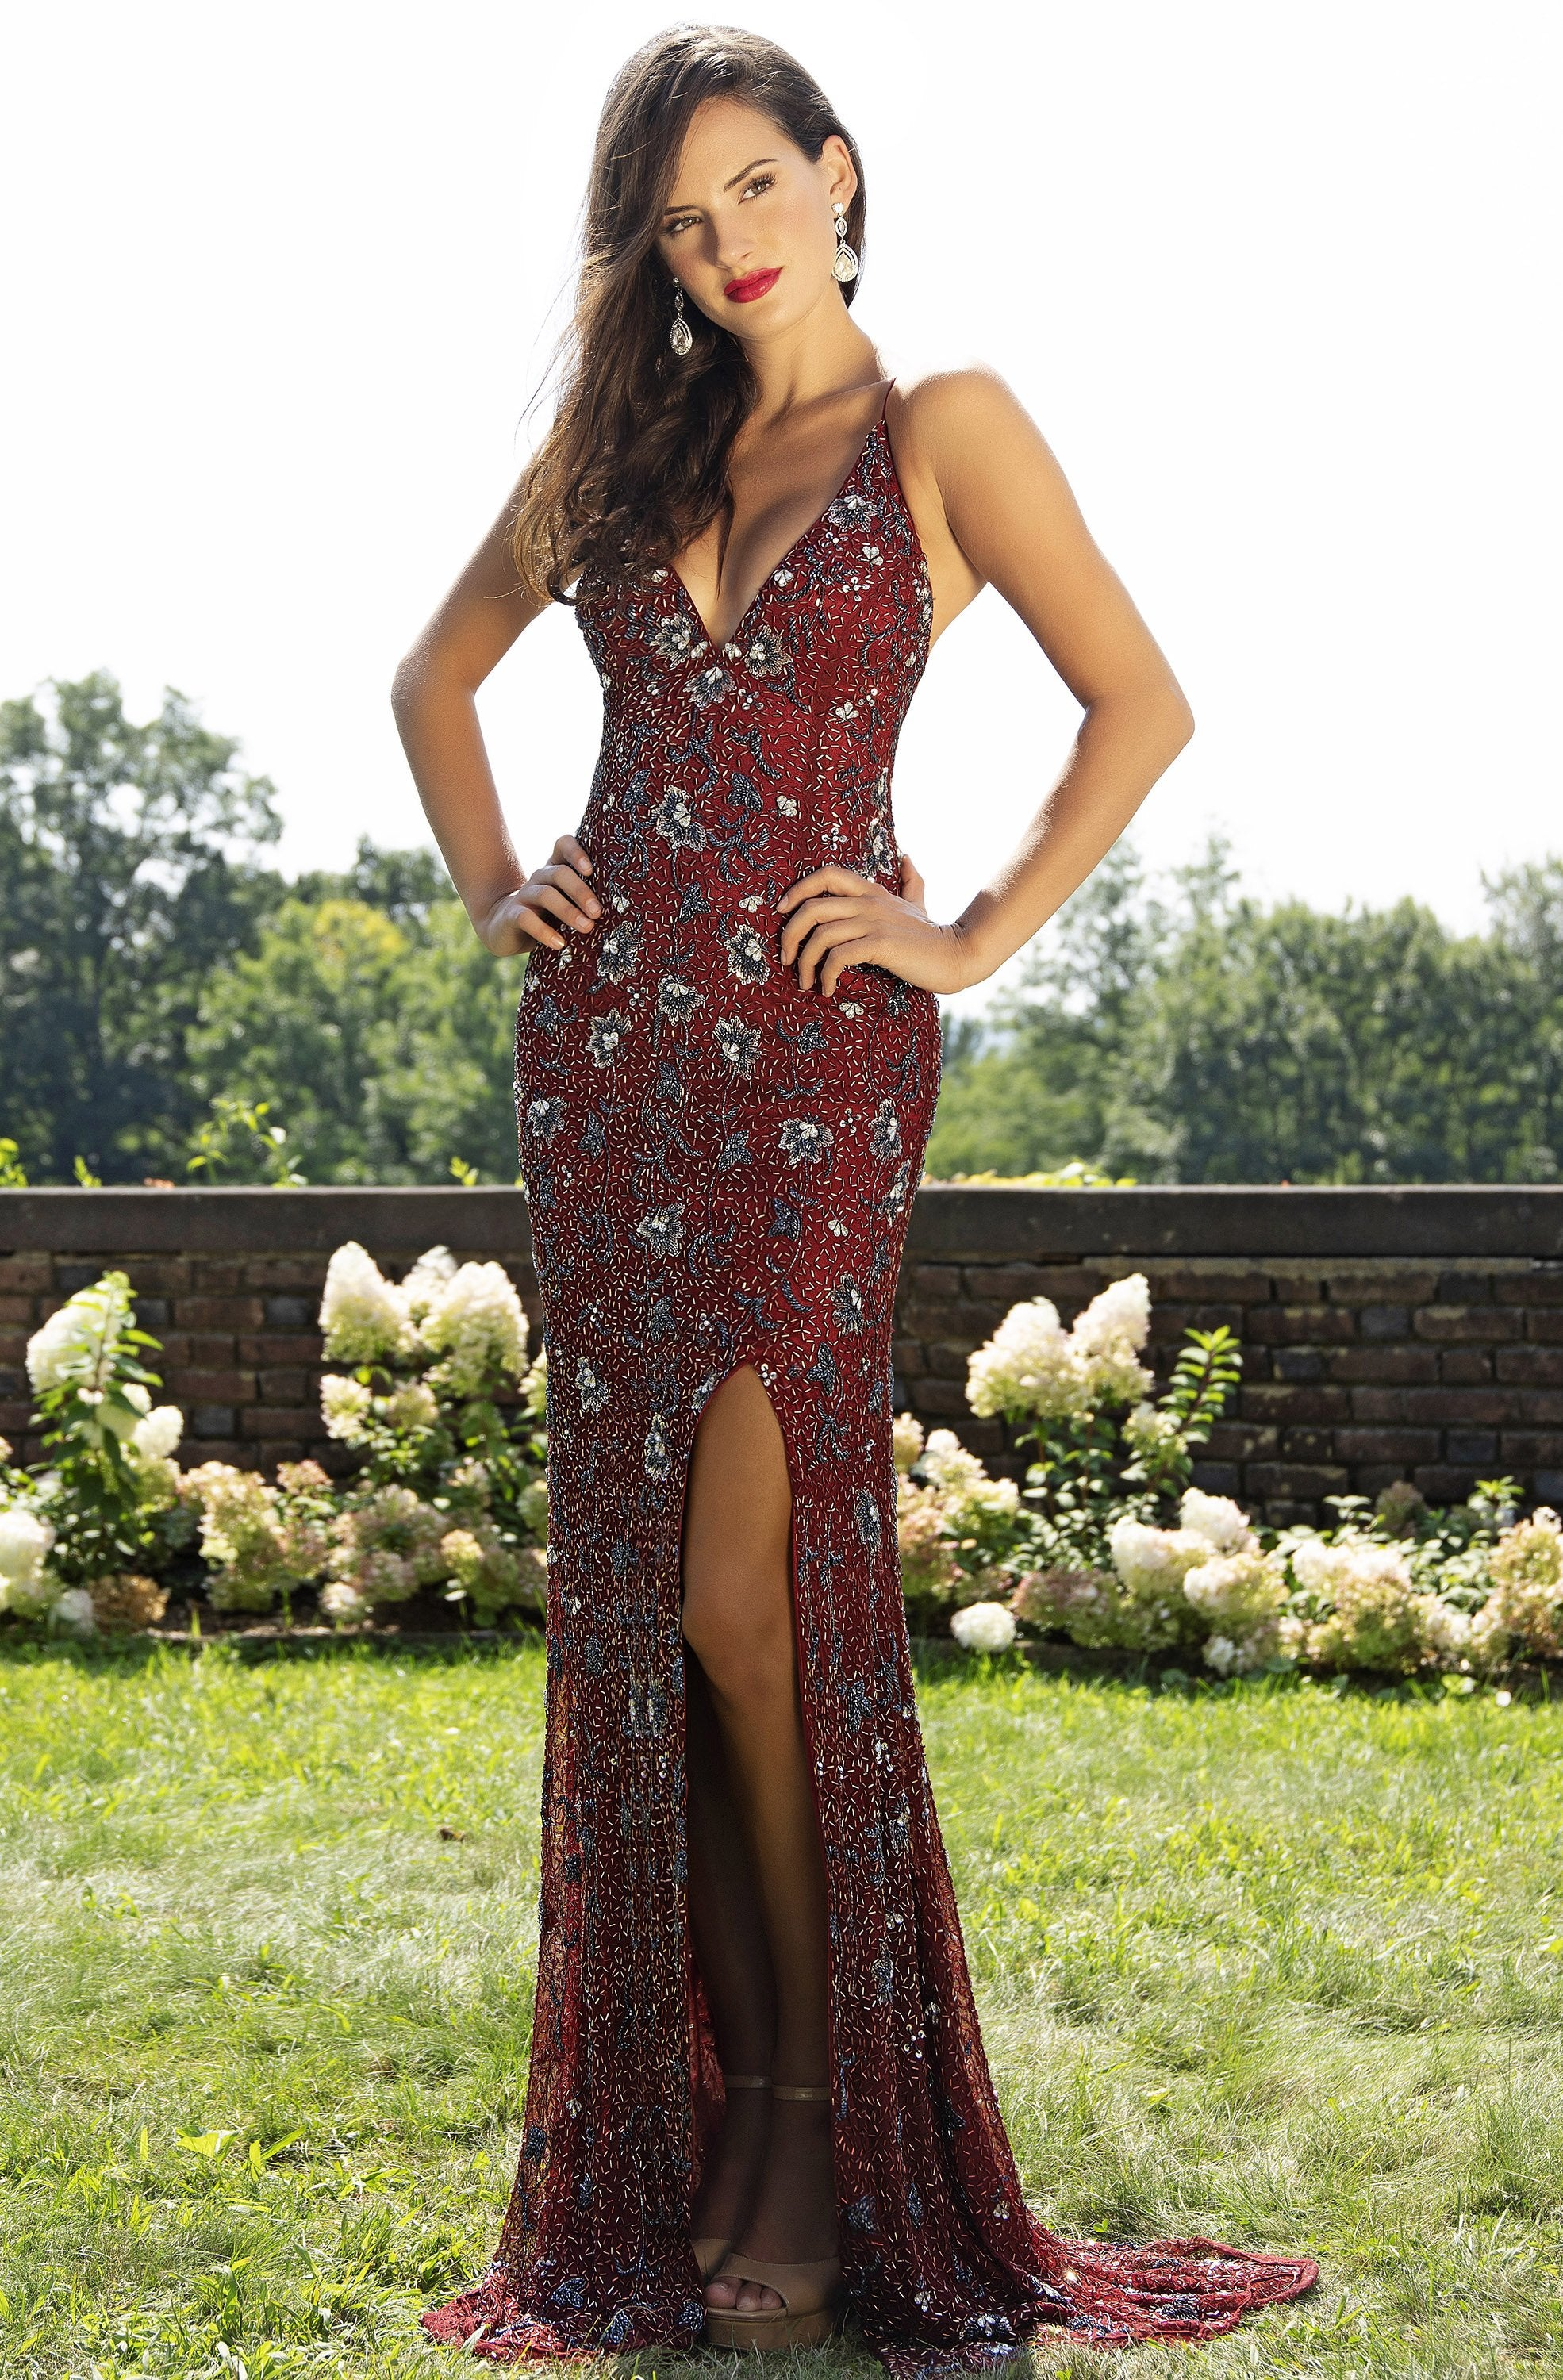 Primavera Couture - 3229 Floral Beaded High Slit Long Gown In Red